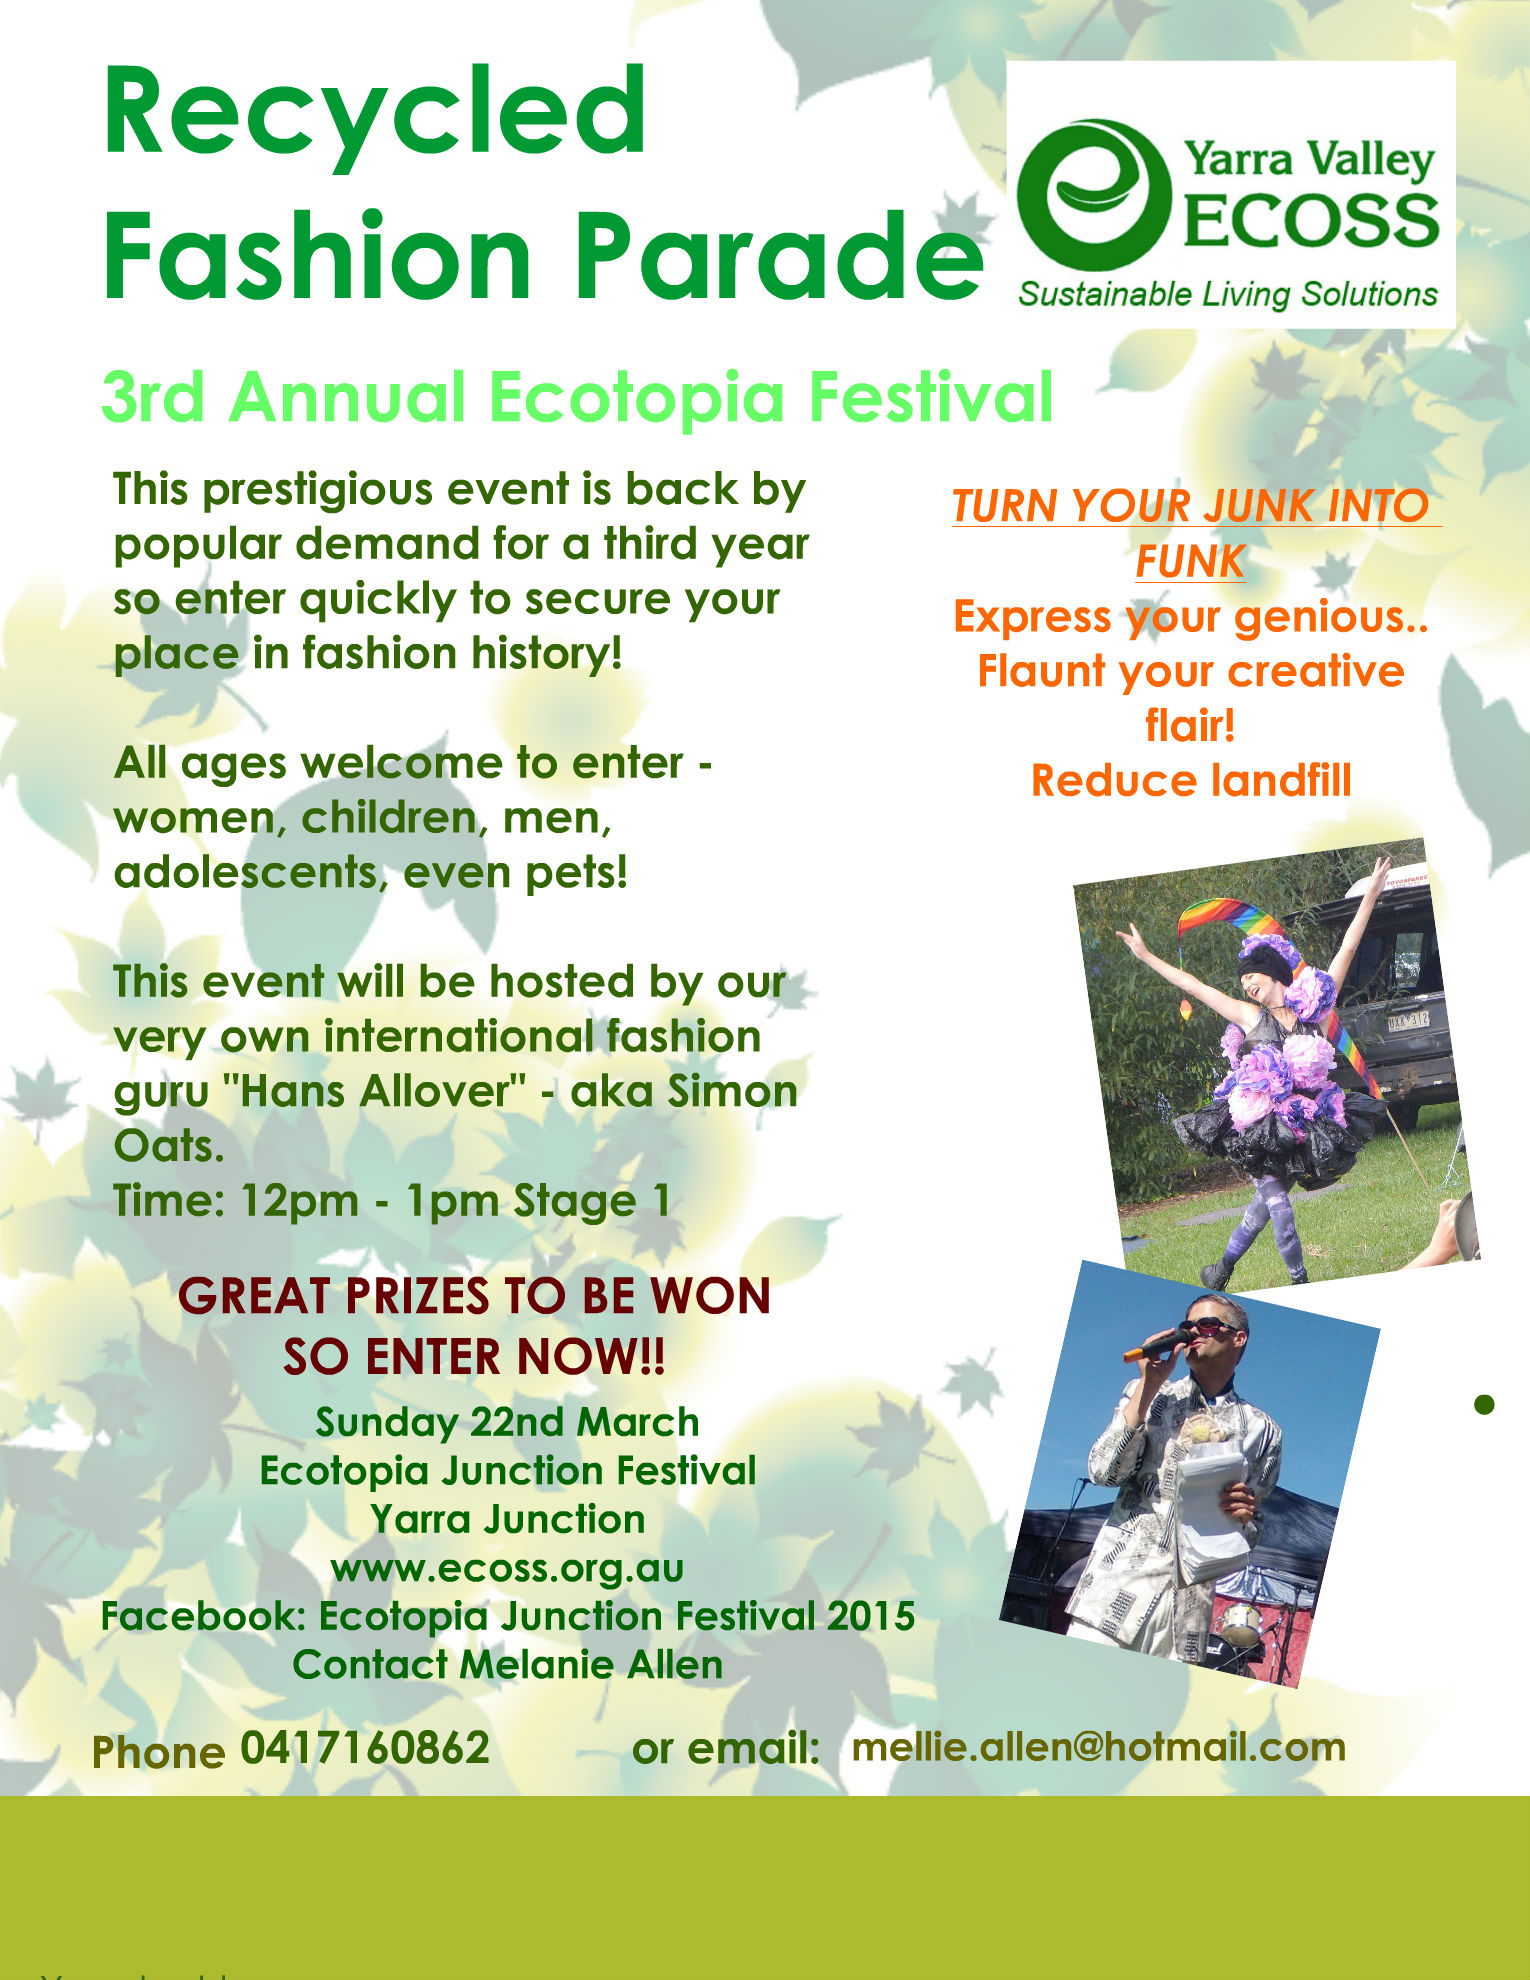 Recycled Fashion Parade ECOSS Flier 2015 - final